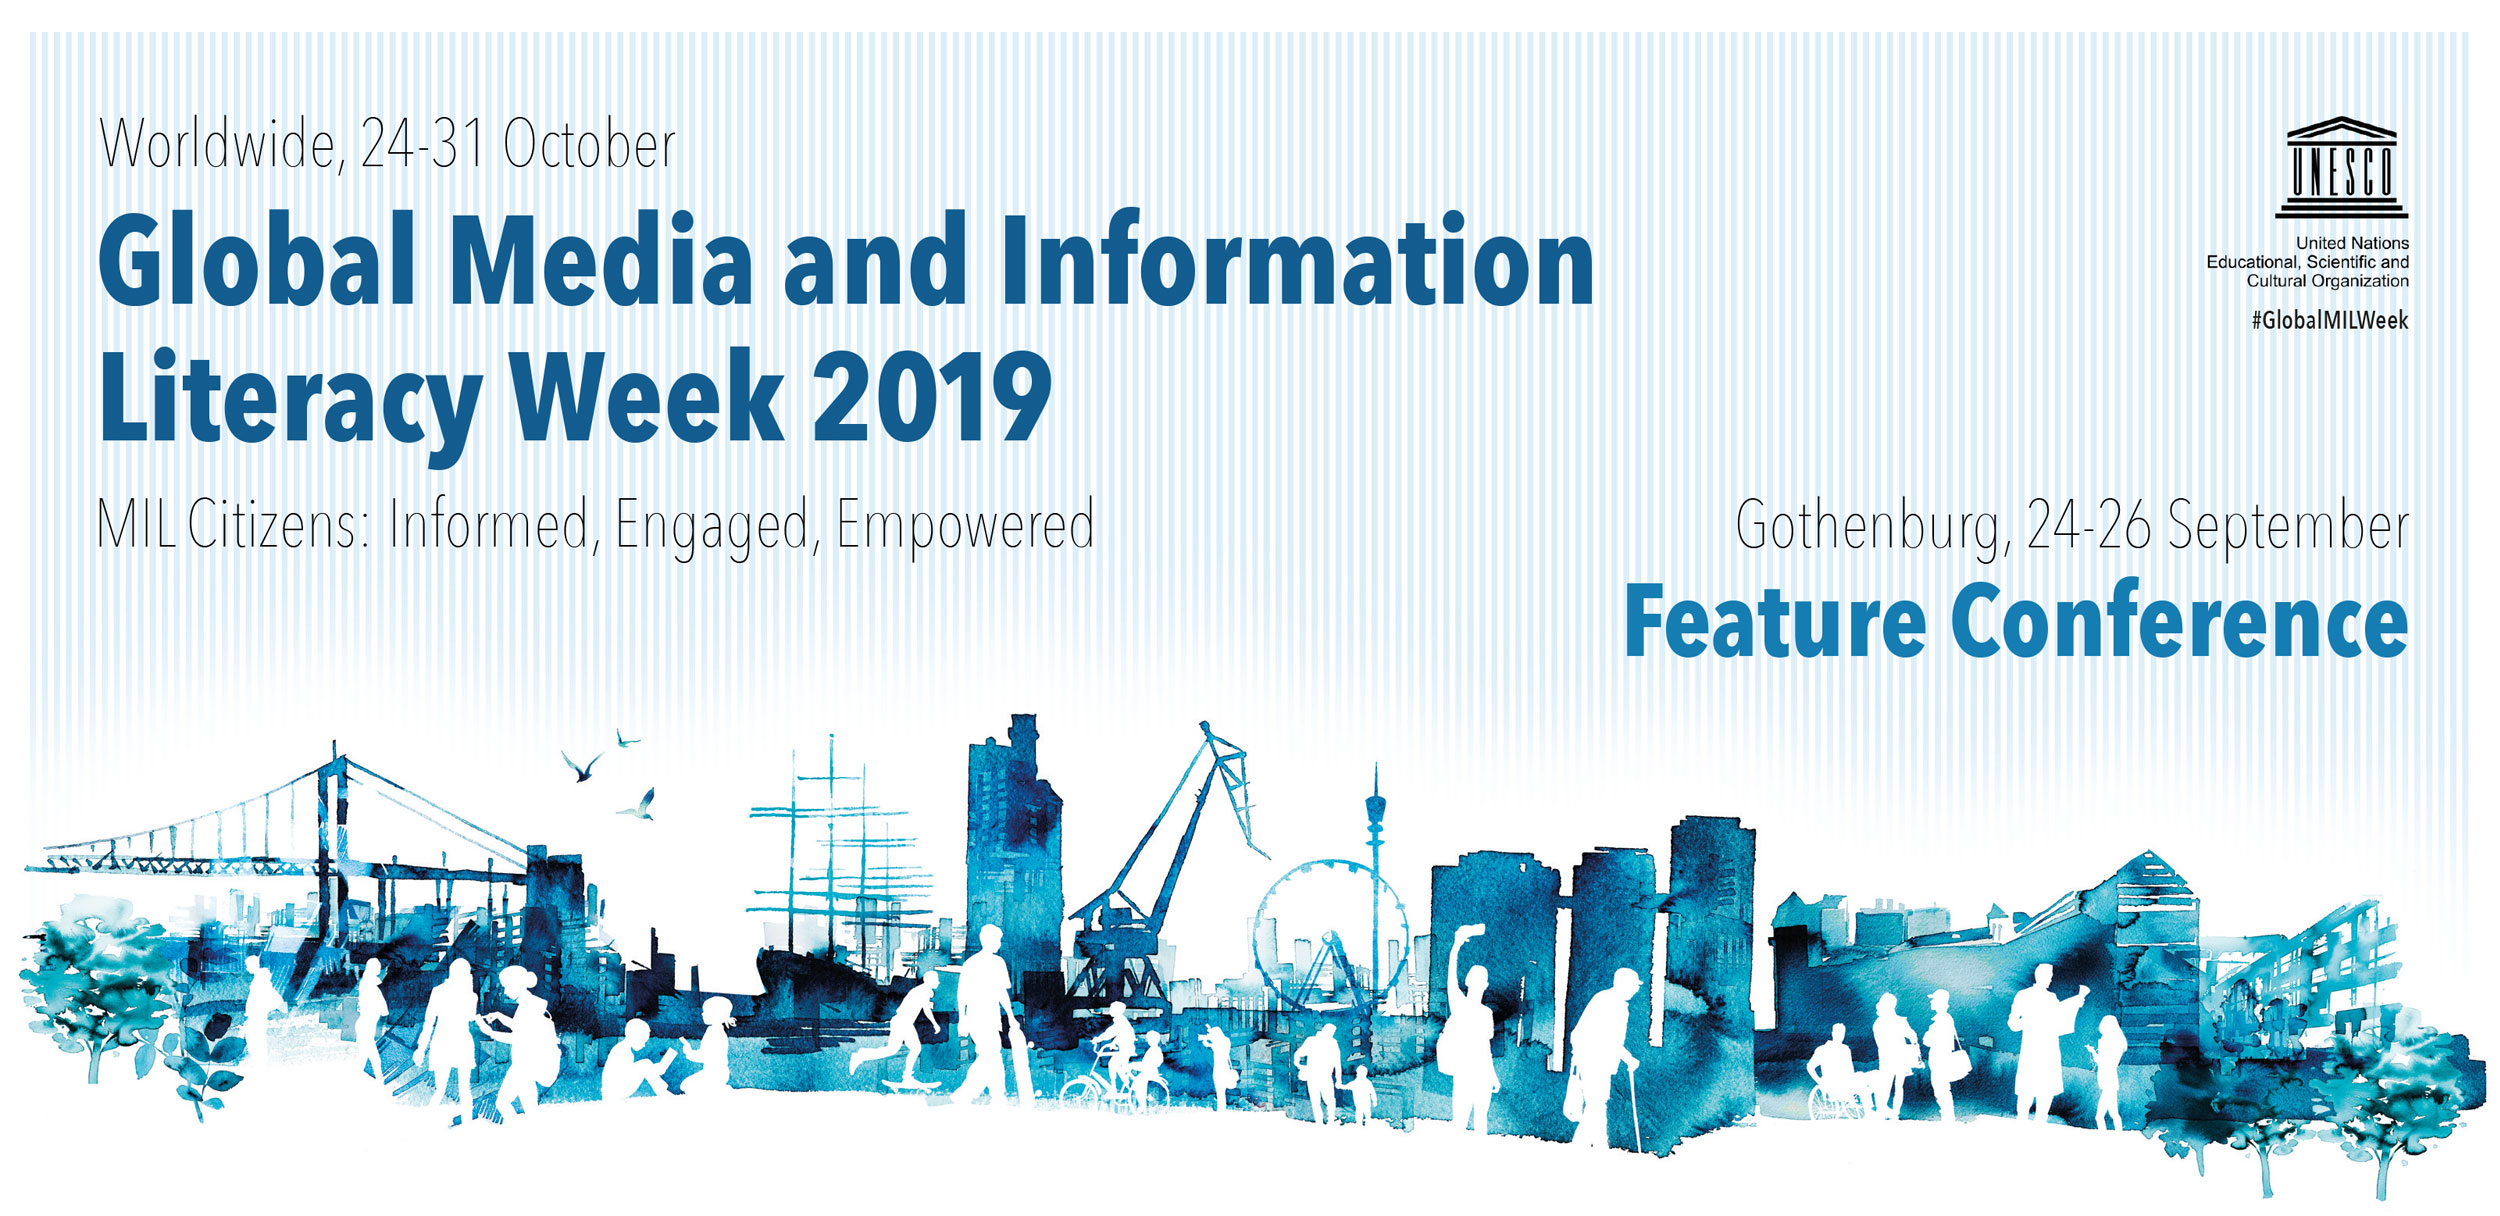 Call for Papers - Global MIL Week 2019 Feature Conference